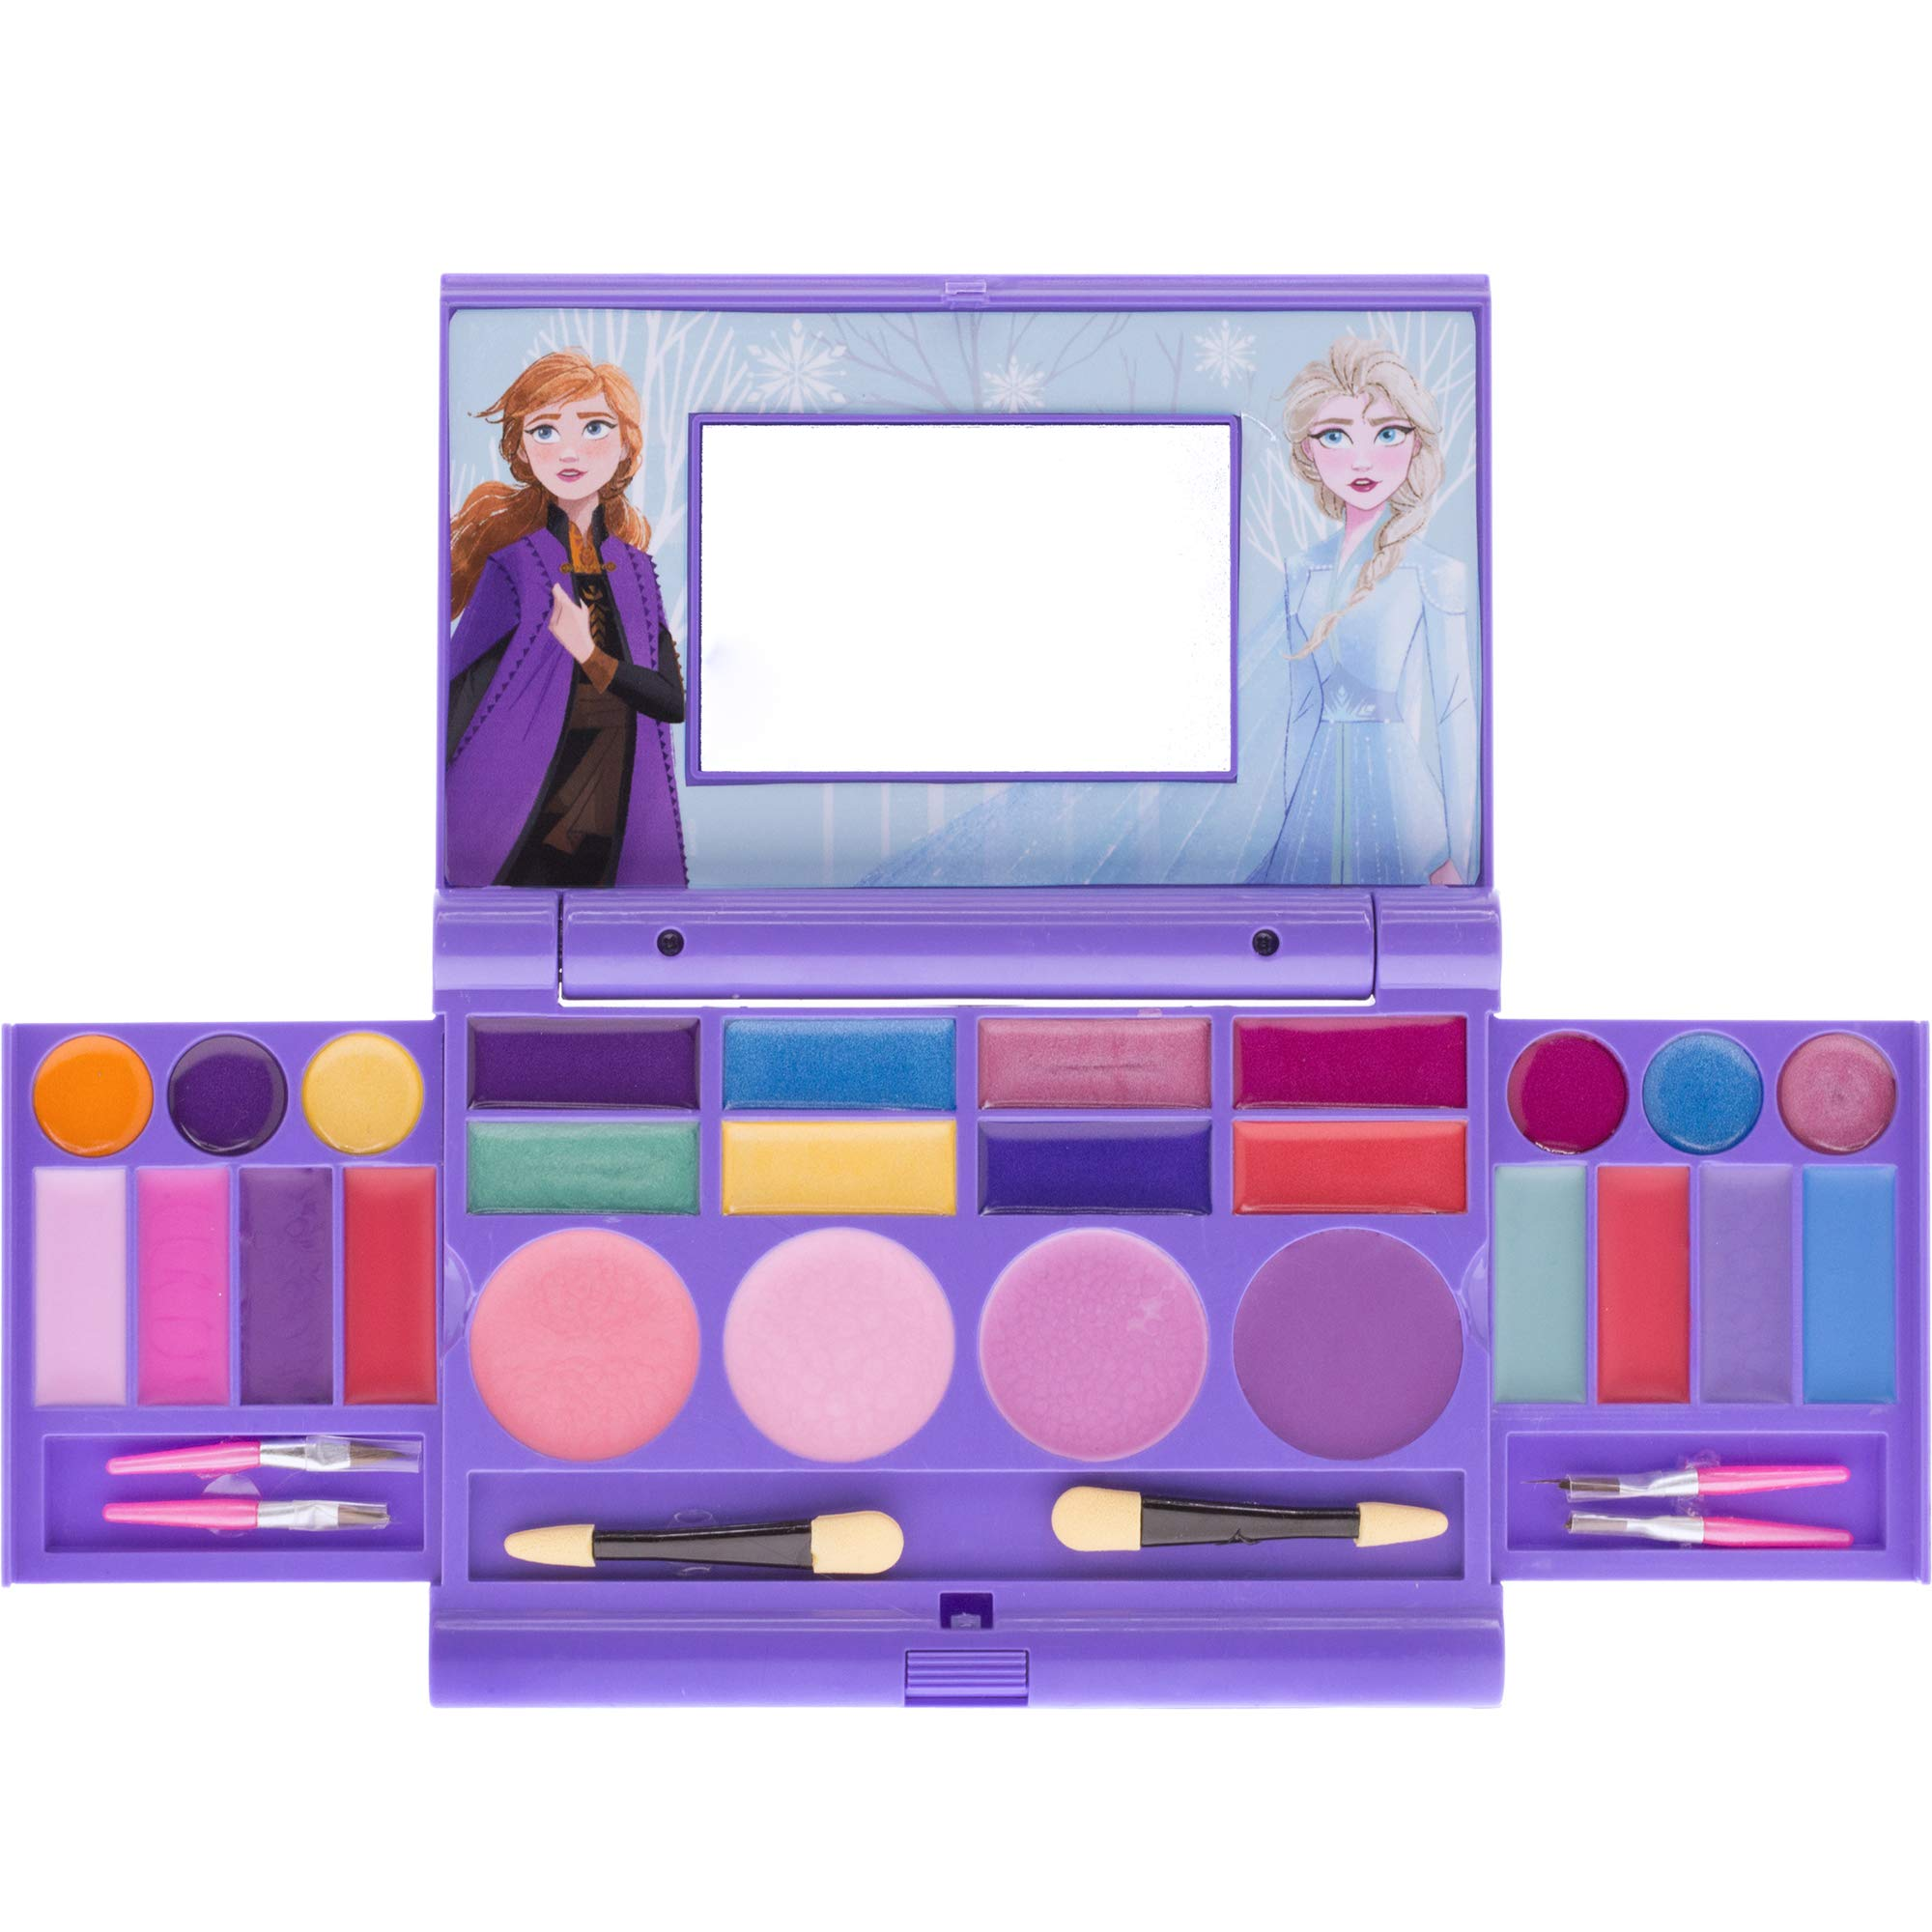 Townley Girl Disney Washable Compact